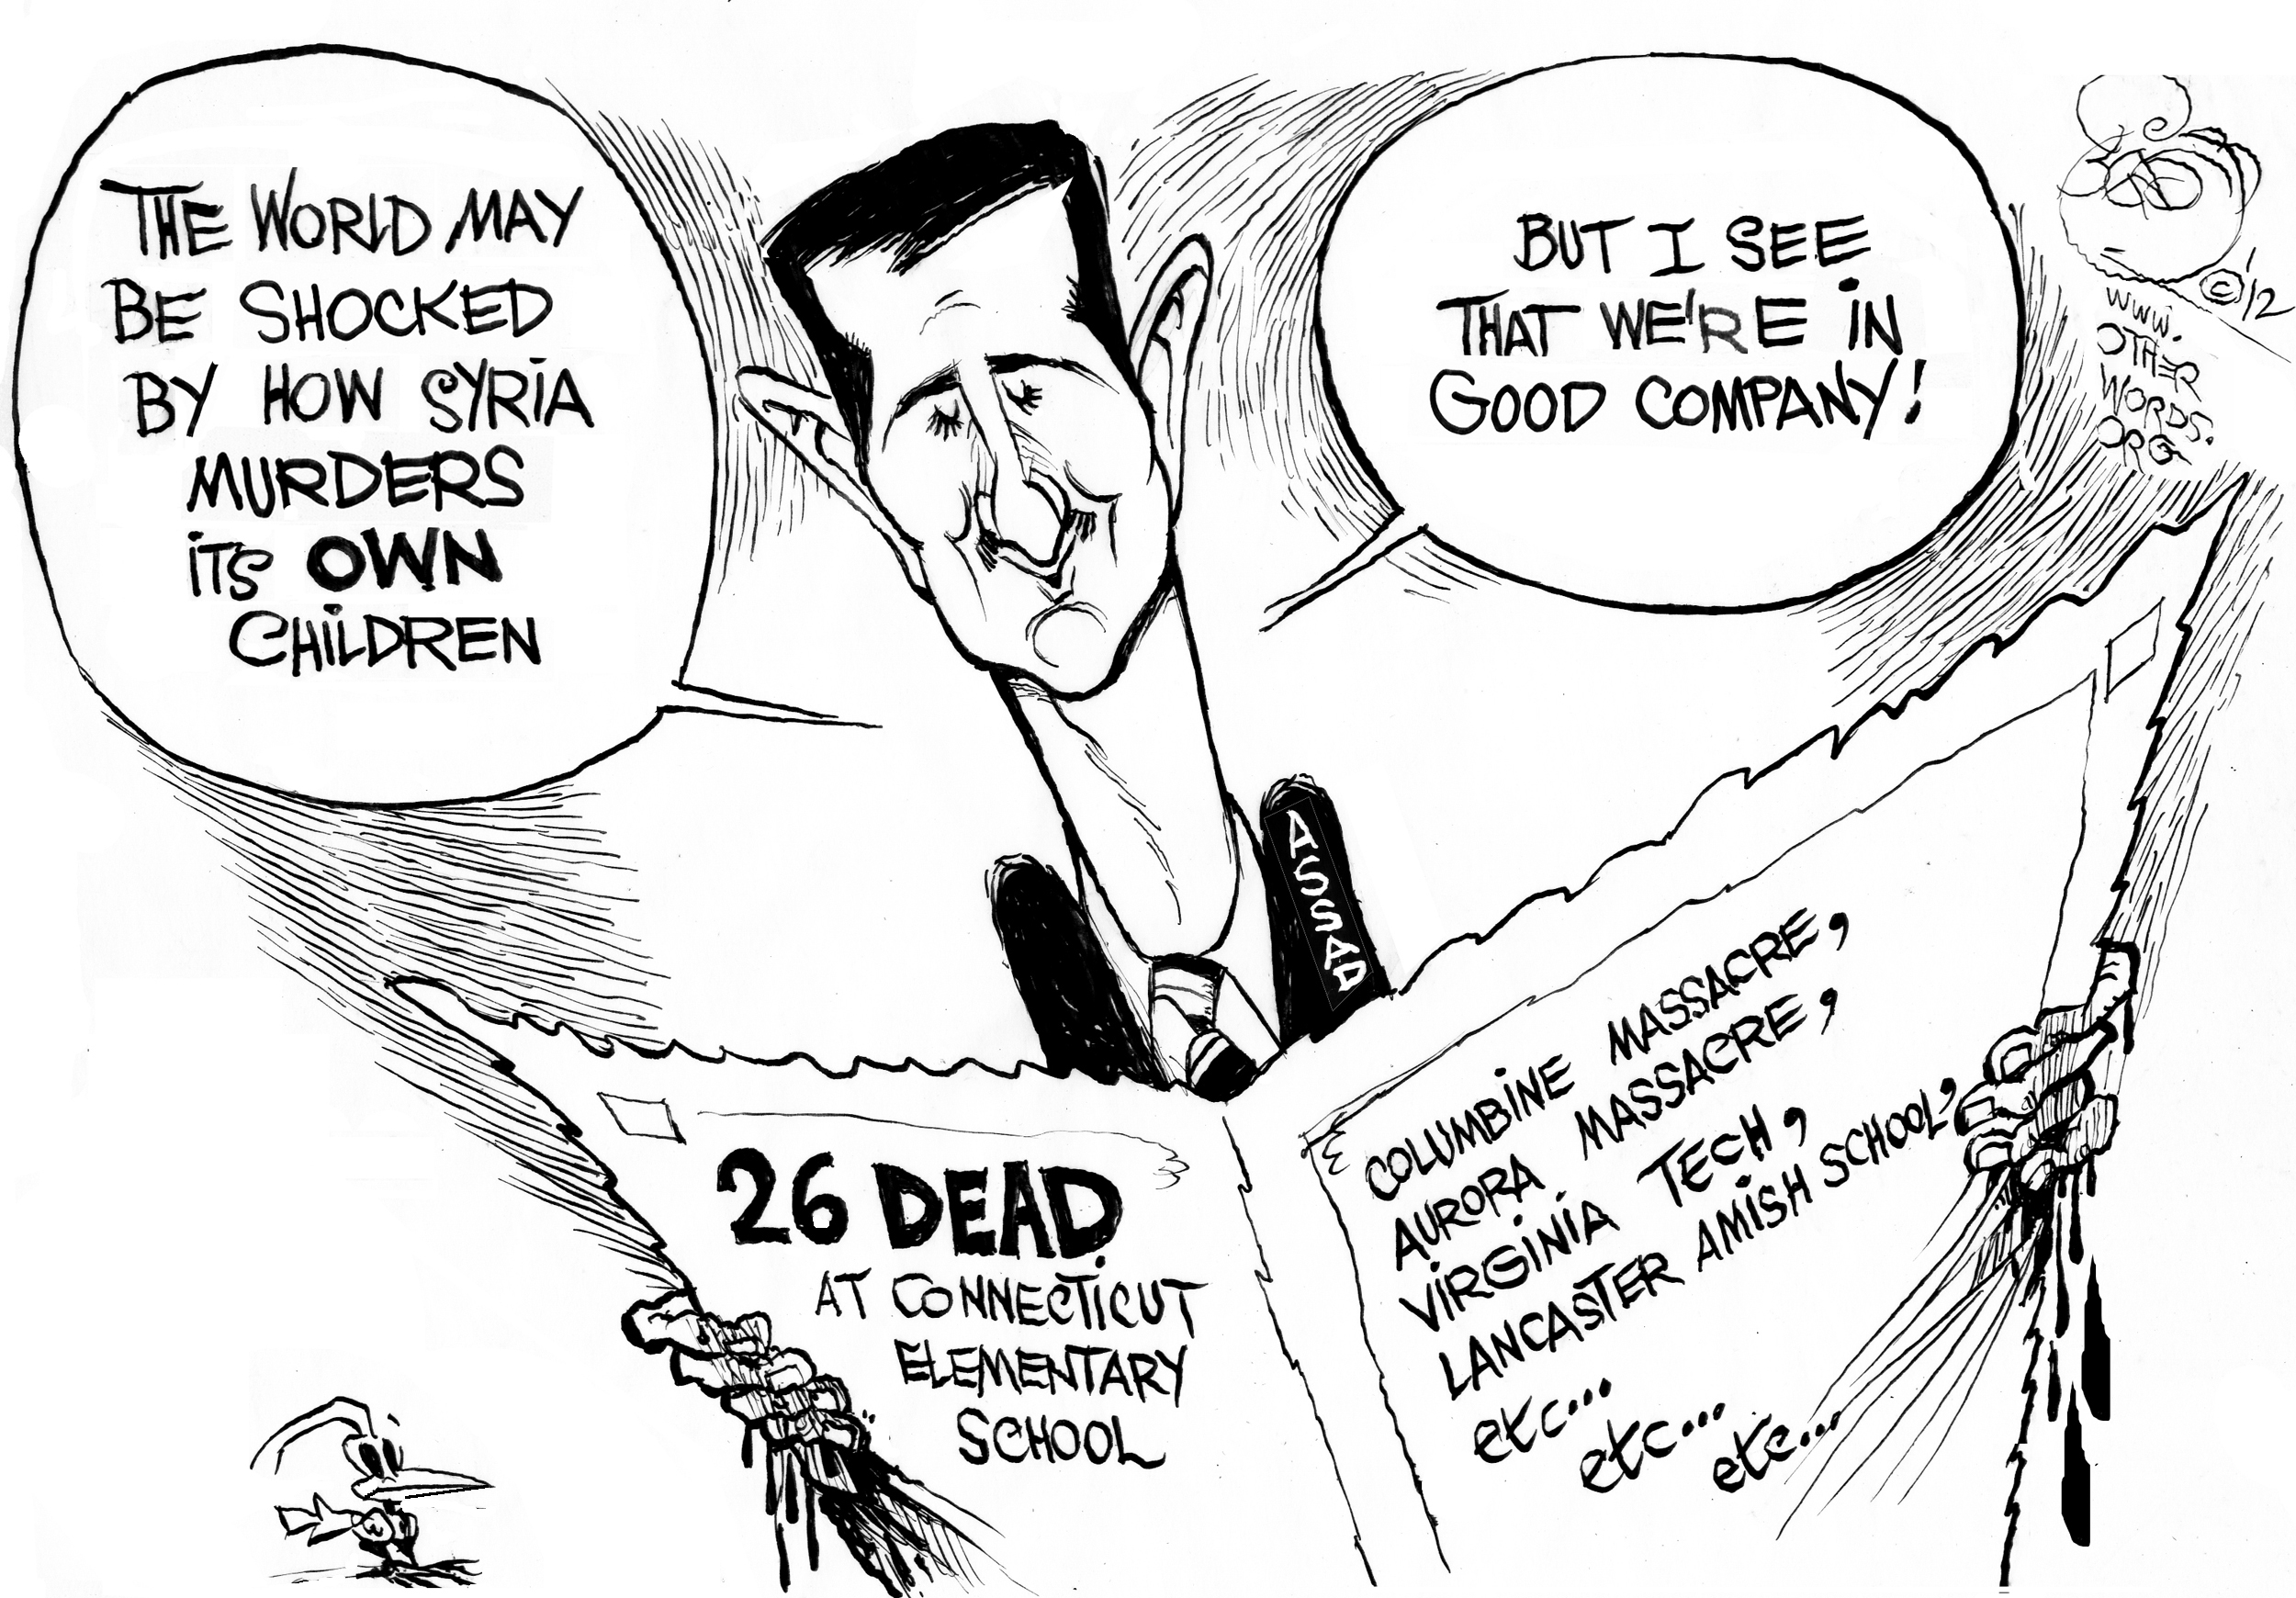 The New Agenda on Guns We Need after Newtown